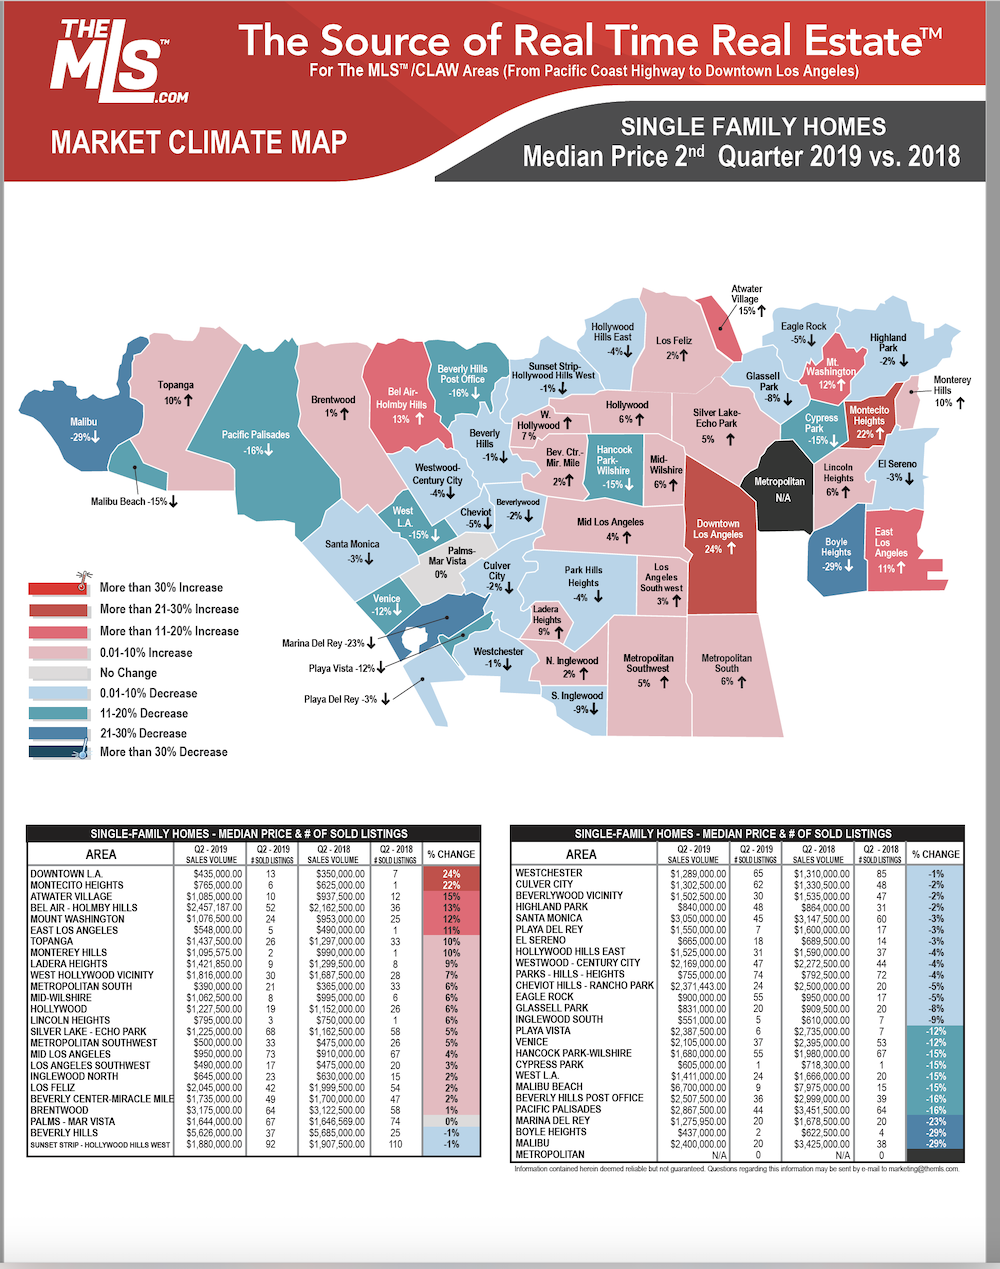 Los Angeles real estate 2nd Qtr 2019